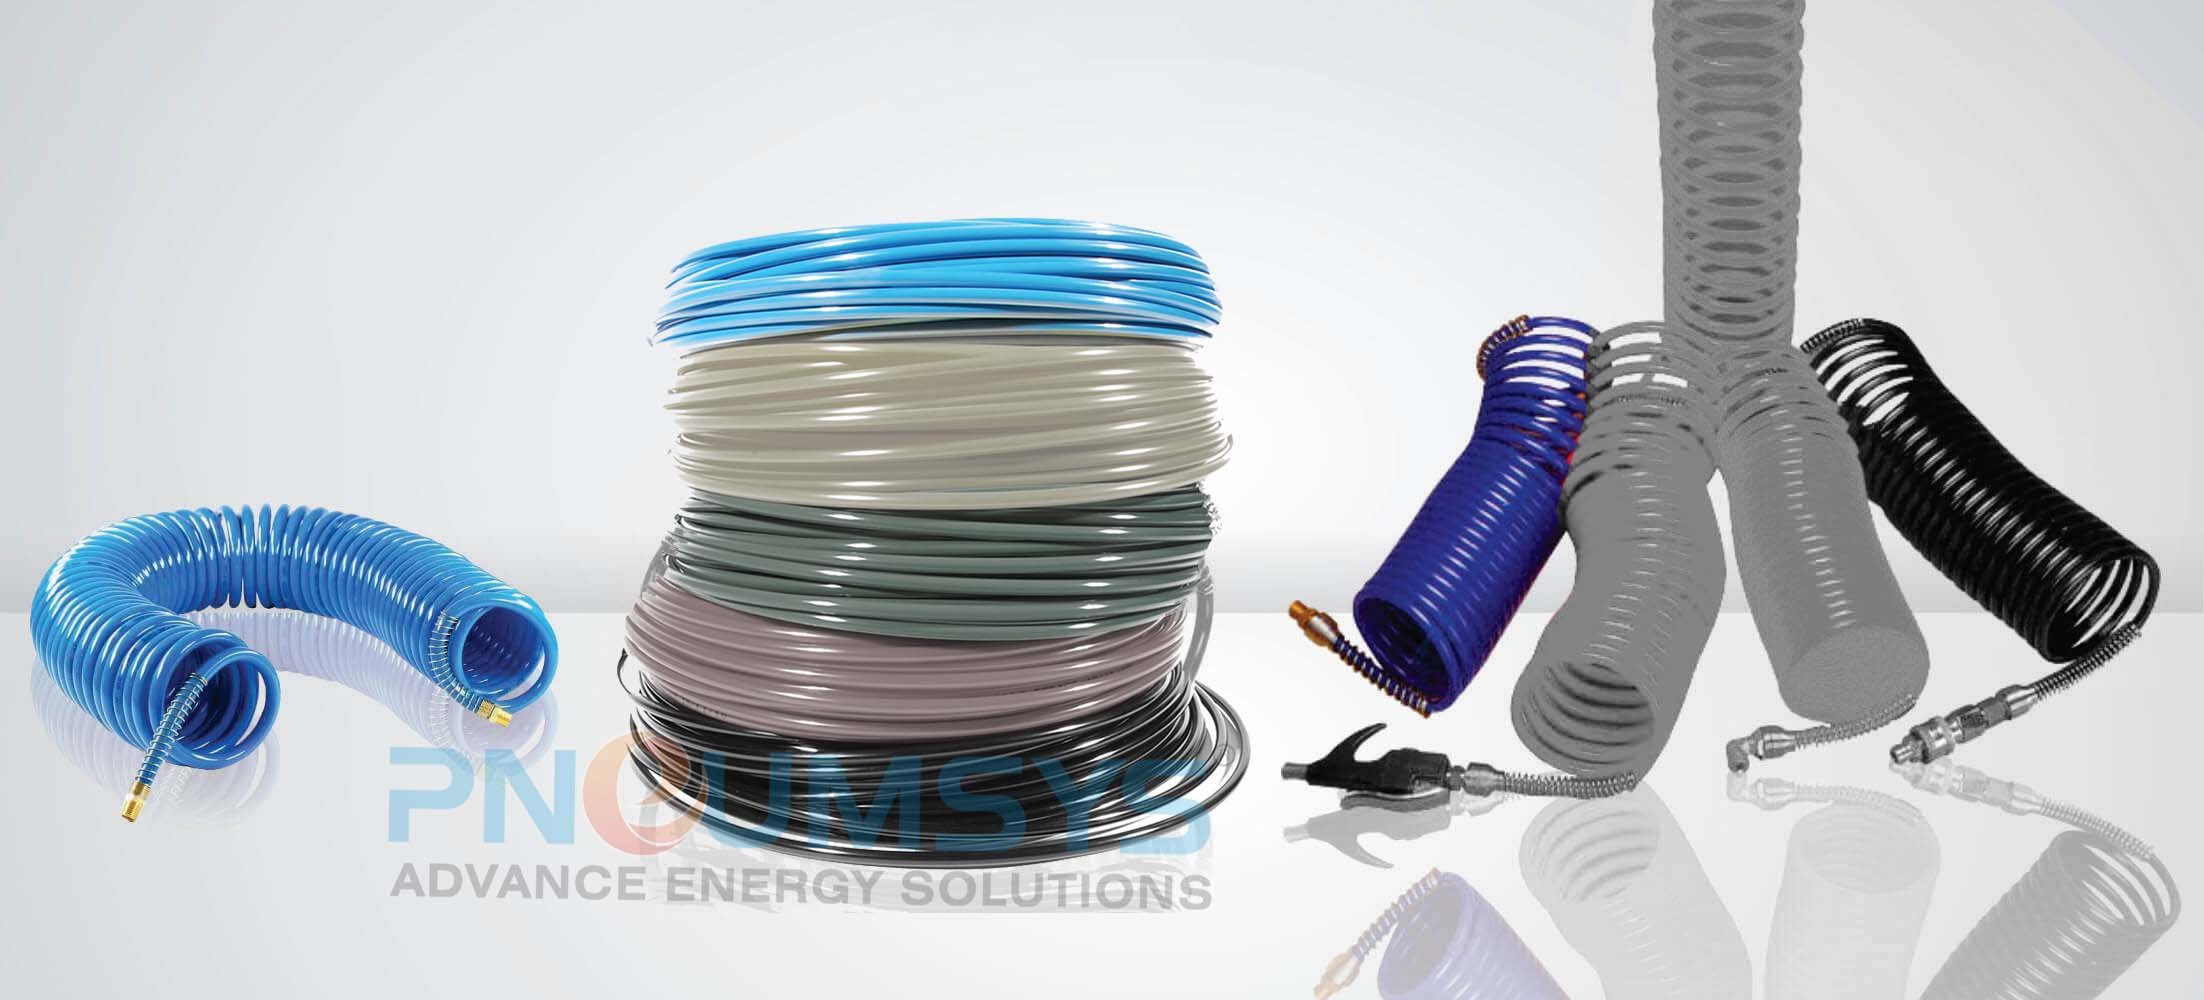 Advance Tubing Materials